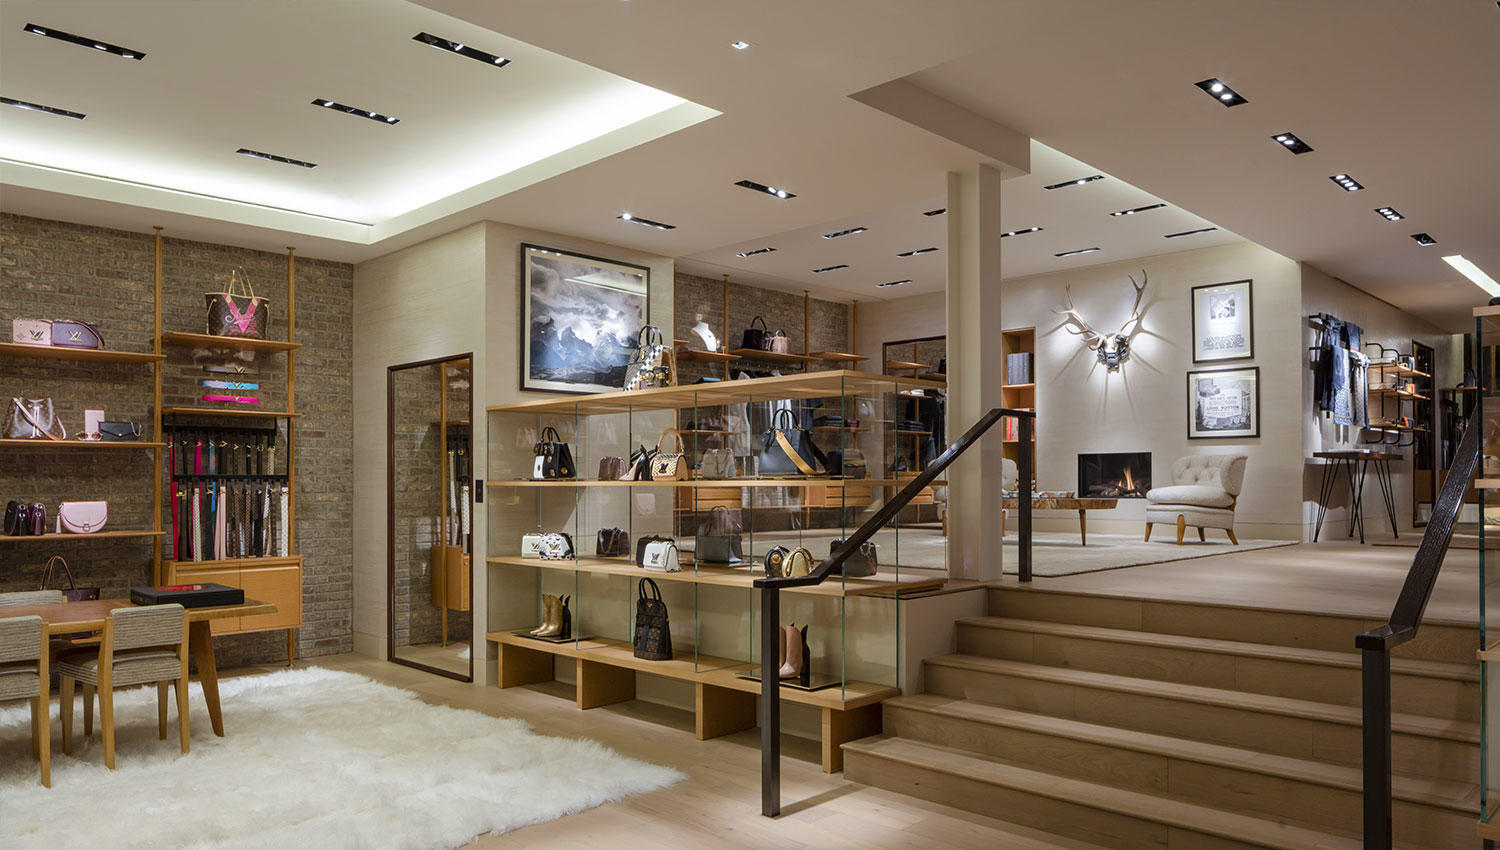 Find out all Louis Vuitton store(s). Get store locations, business hours, phone numbers and more. Go shopping on Watches, Sunglasses, Belts, Bags, Shoes and Sneakers/5(58).